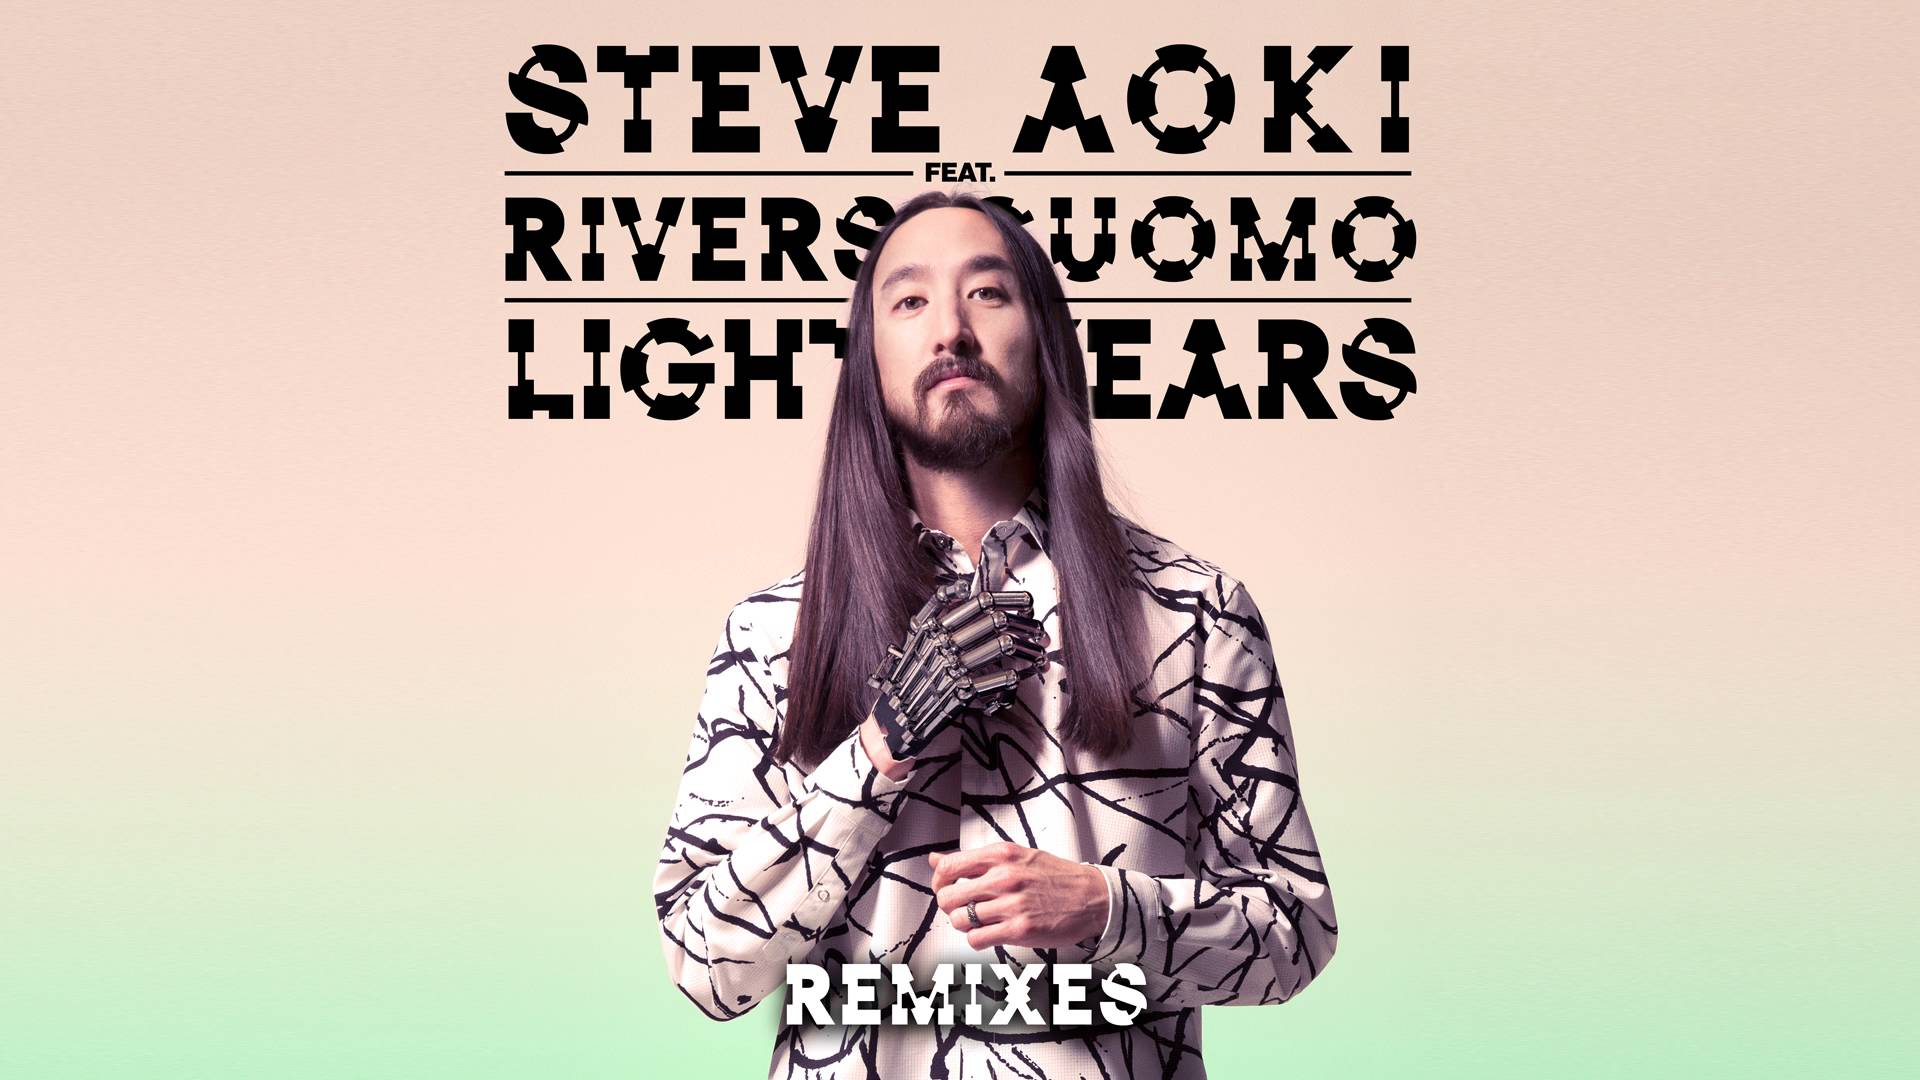 Steve Aoki – Light Years feat. Rivers Cuomo (Funkin Matt Remix) [Cover Art]